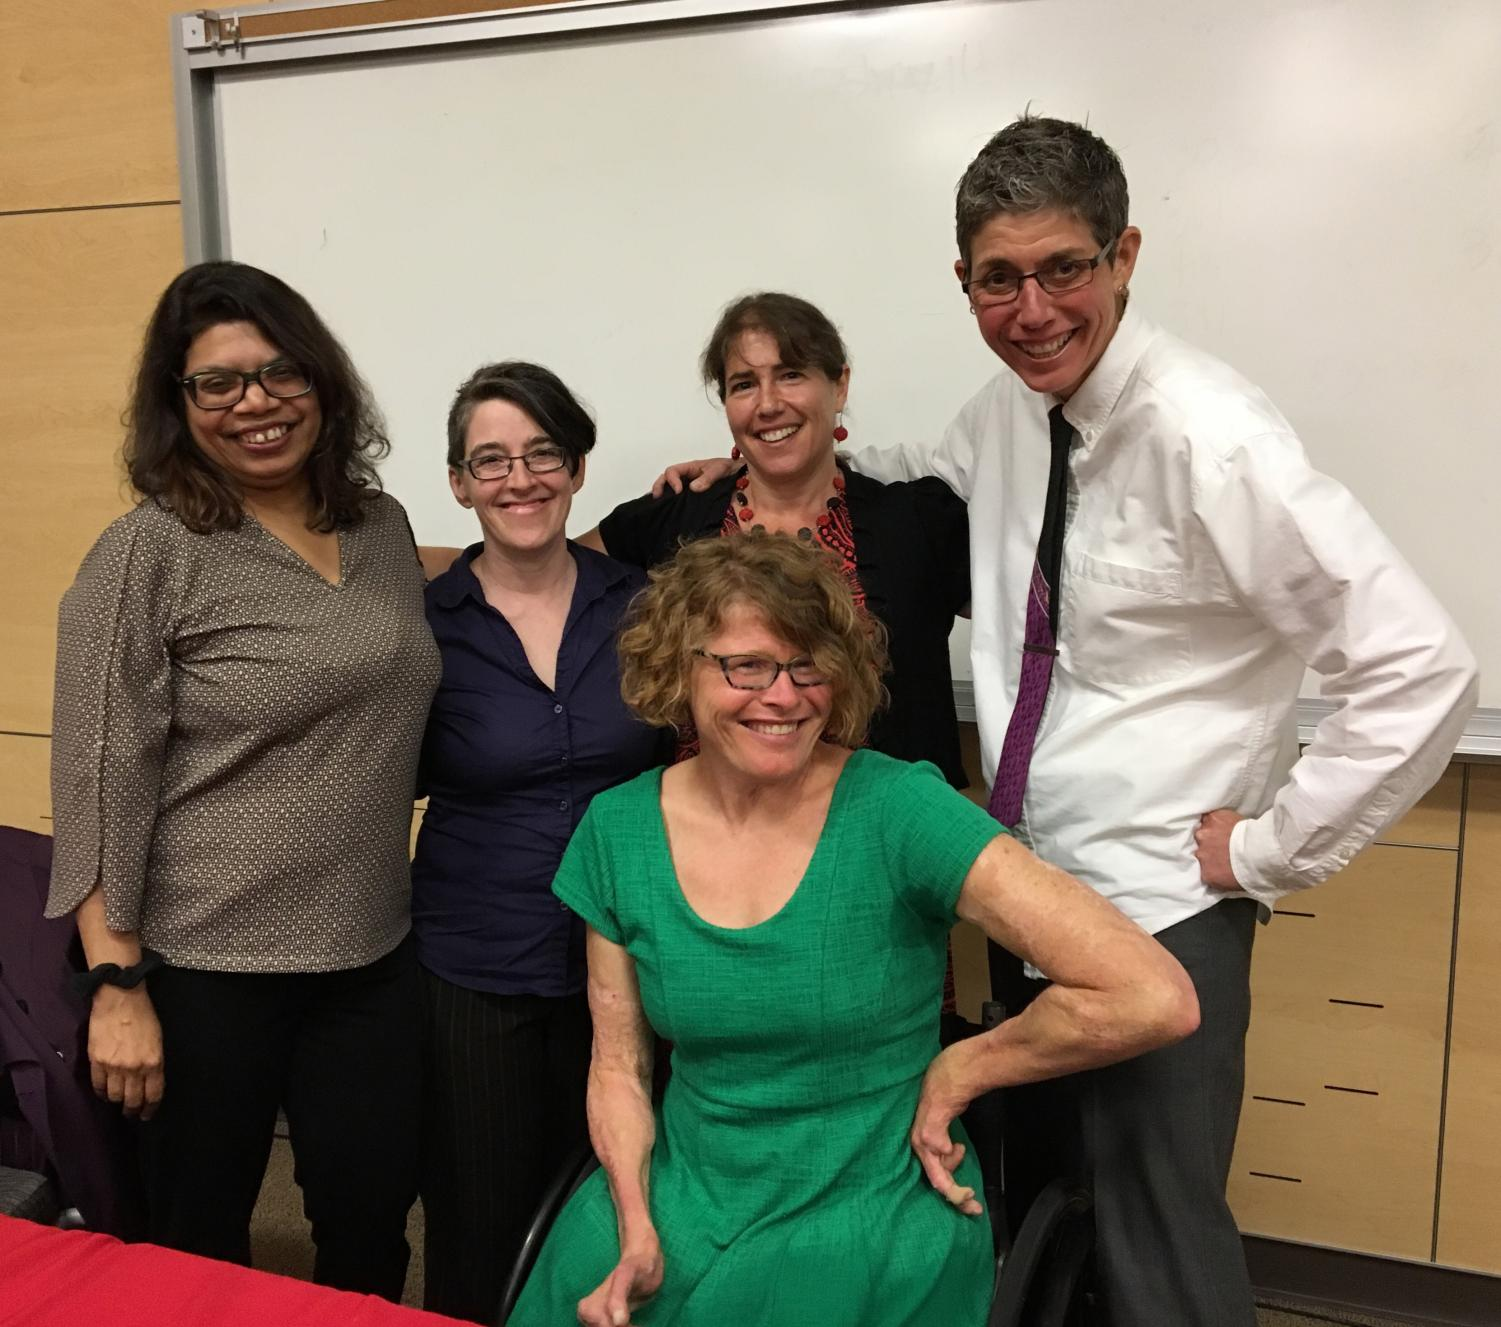 Front row: Alison Kafer, PhD. Back row: Nirmala Erevelles, PhD, Lisa Logan, Jessi Willis, PhD, Judy Rohrer, PhD. Erevelles and Kafer spoke recently at EWU for the